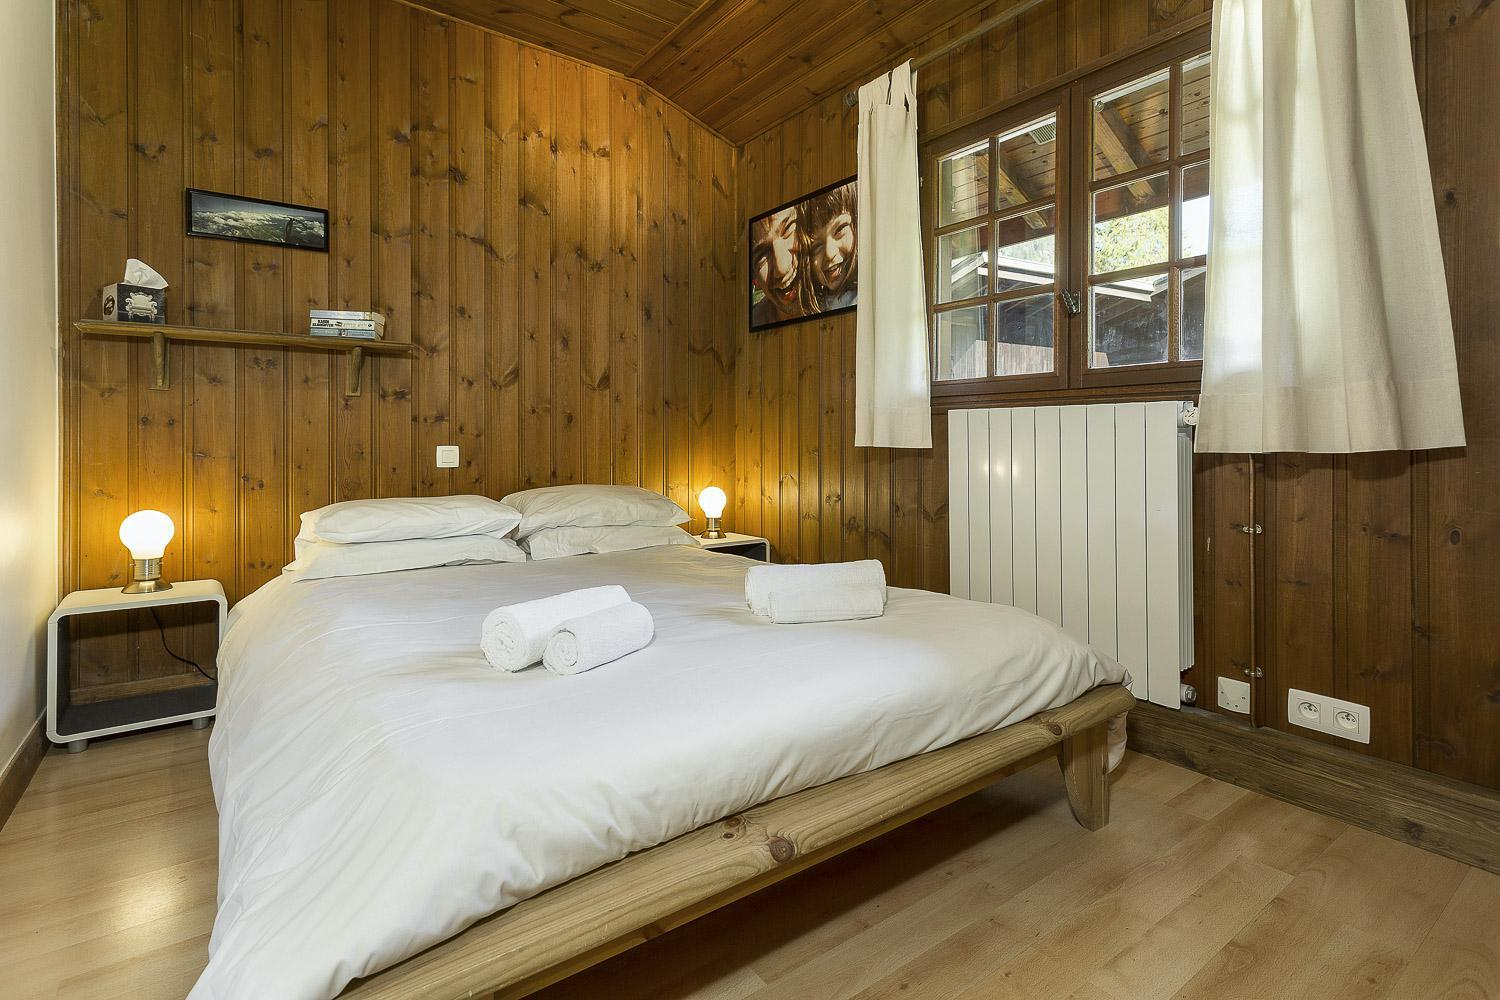 CHALET ANMA, LES HOUCHES